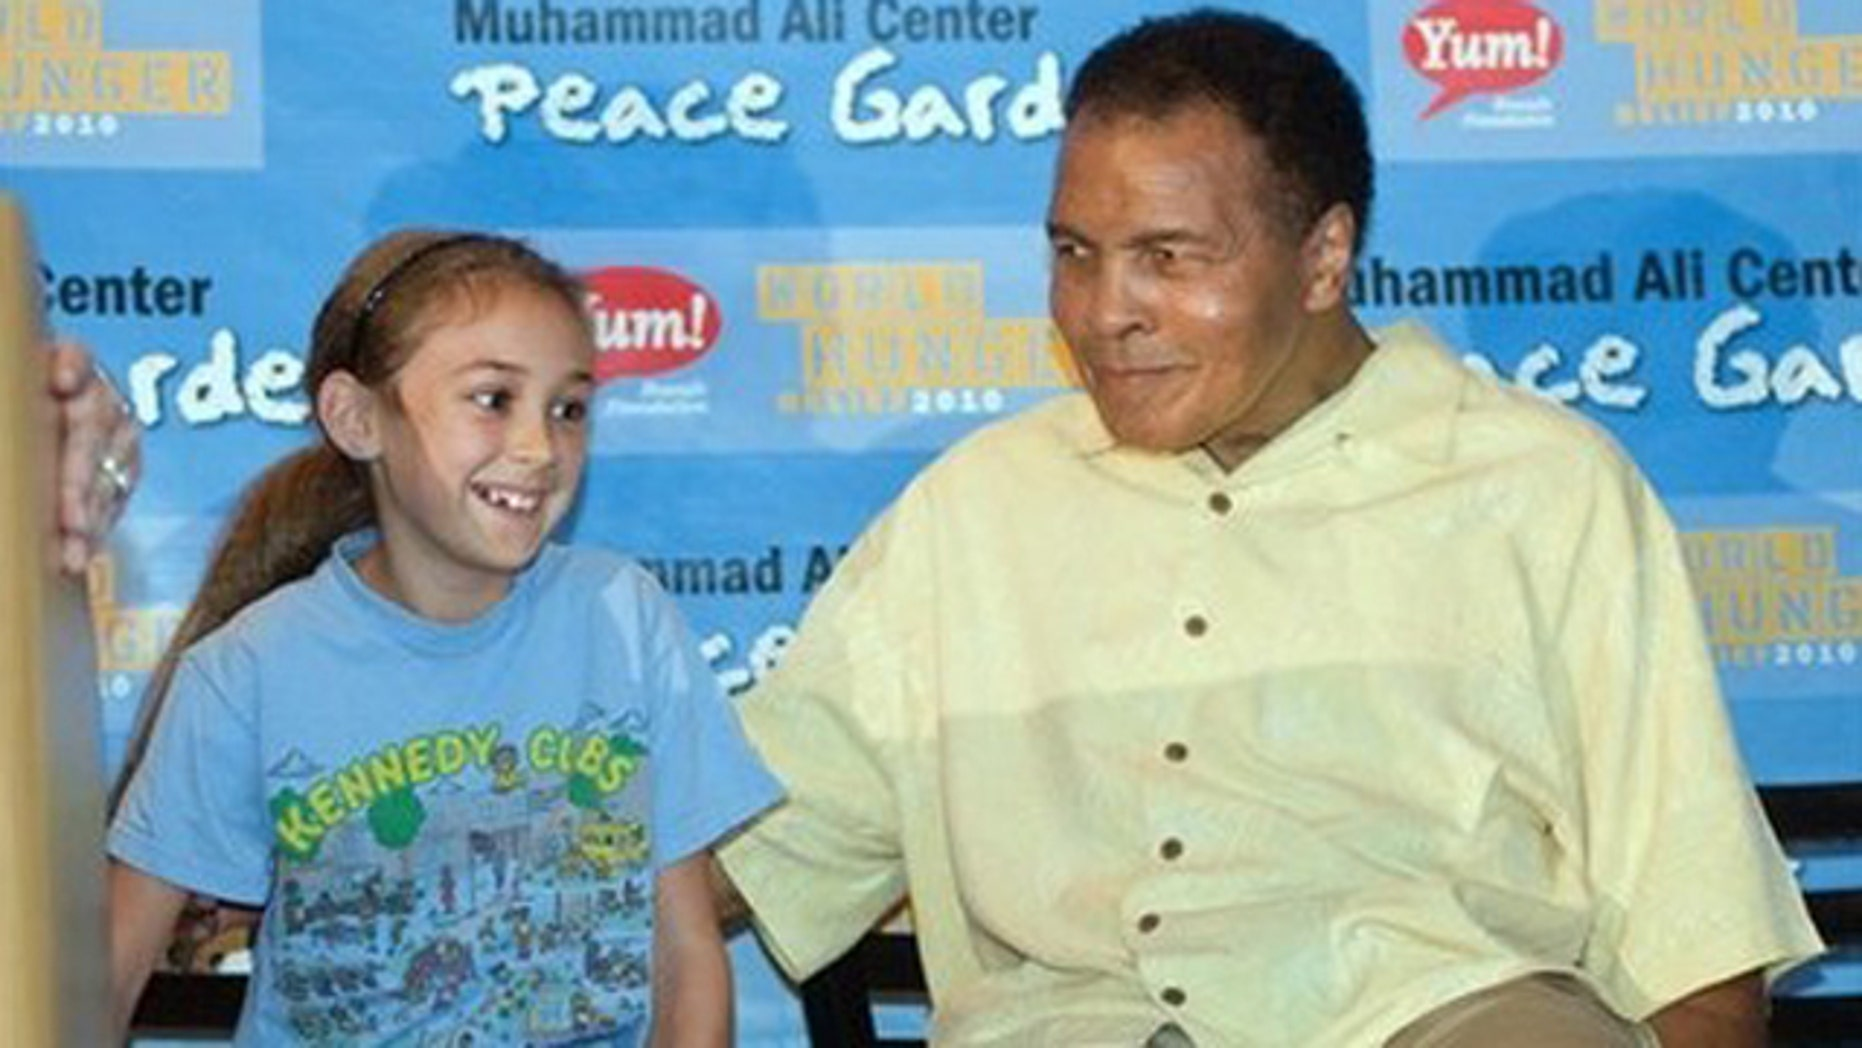 Sept. 21, 2010: United Nations International Day of Peace, The Muhammad Ali Center and Yum! Brands Foundation partner to launch global Muhammad Ali Center Peace Gardens today to teach children multicultural respect and nutrition through gardens.